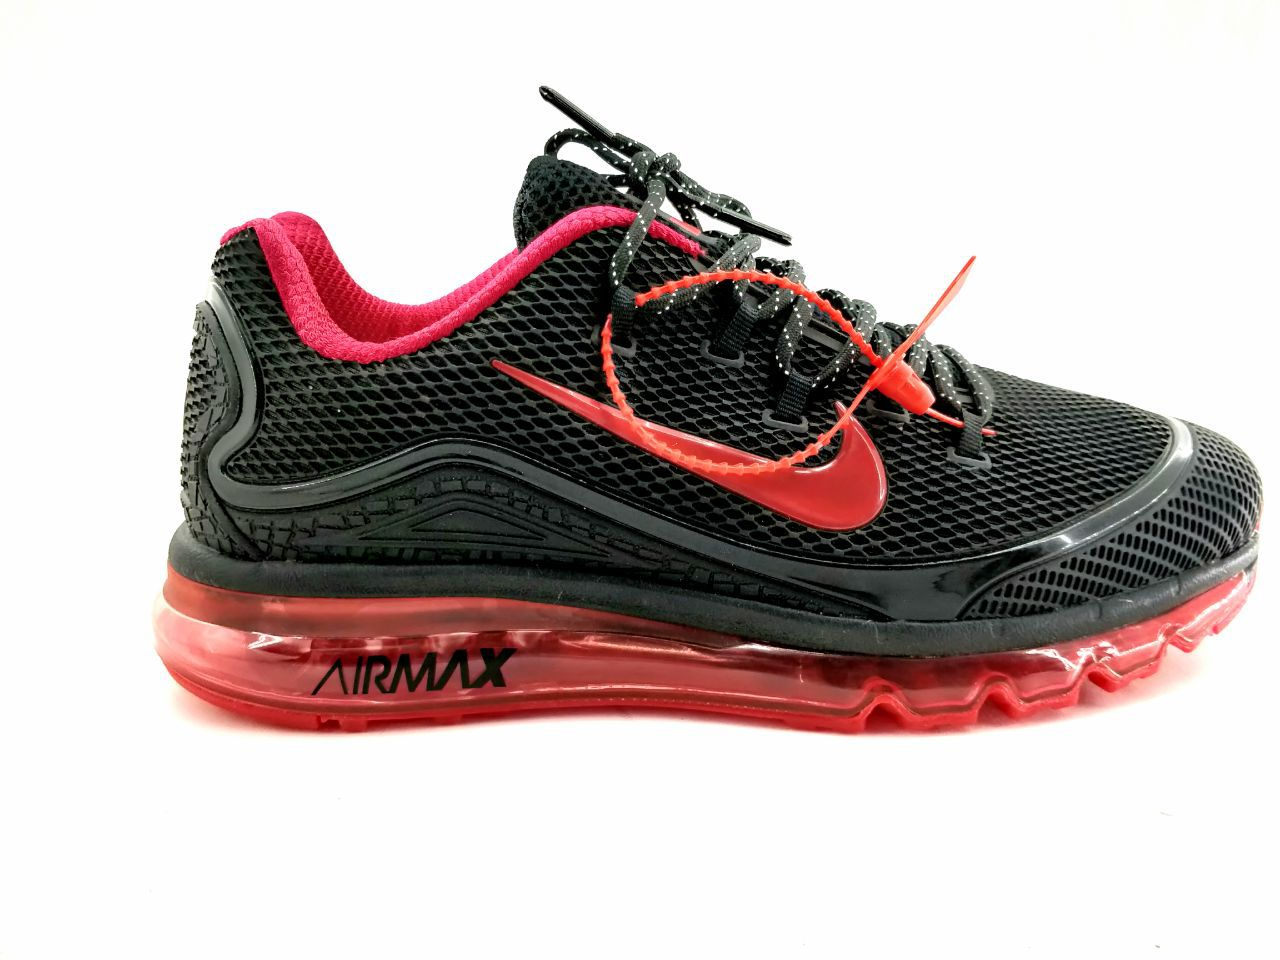 Nike Airmax 2018 Elite Red Running Shoes